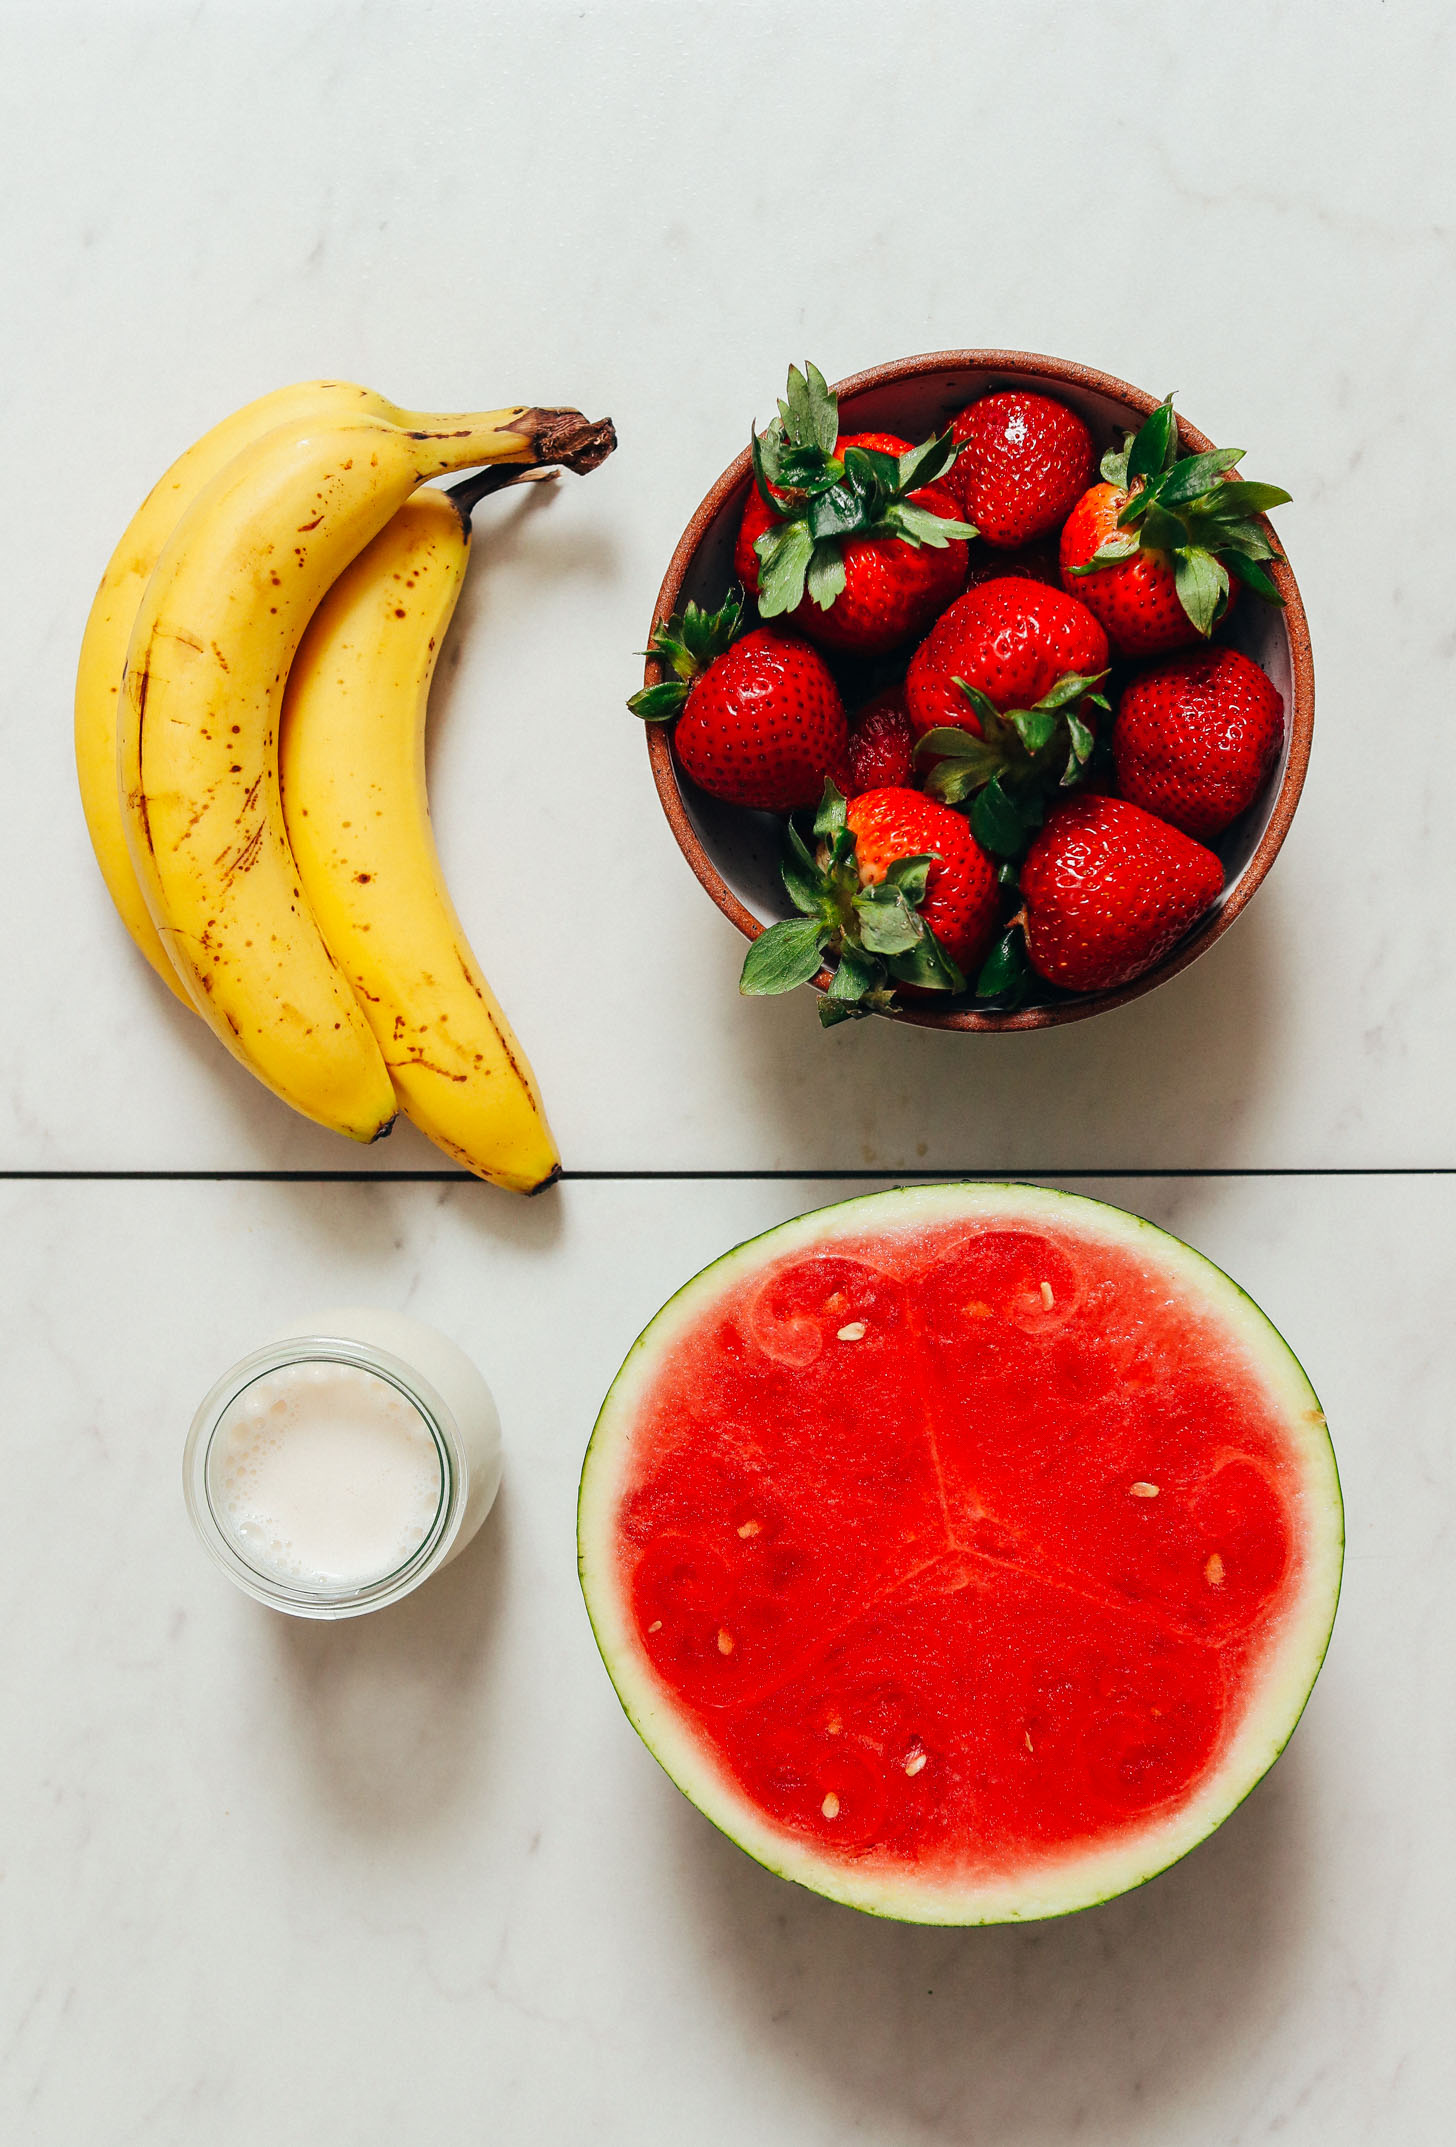 Bananas, strawberries, watermelon, and almond milk